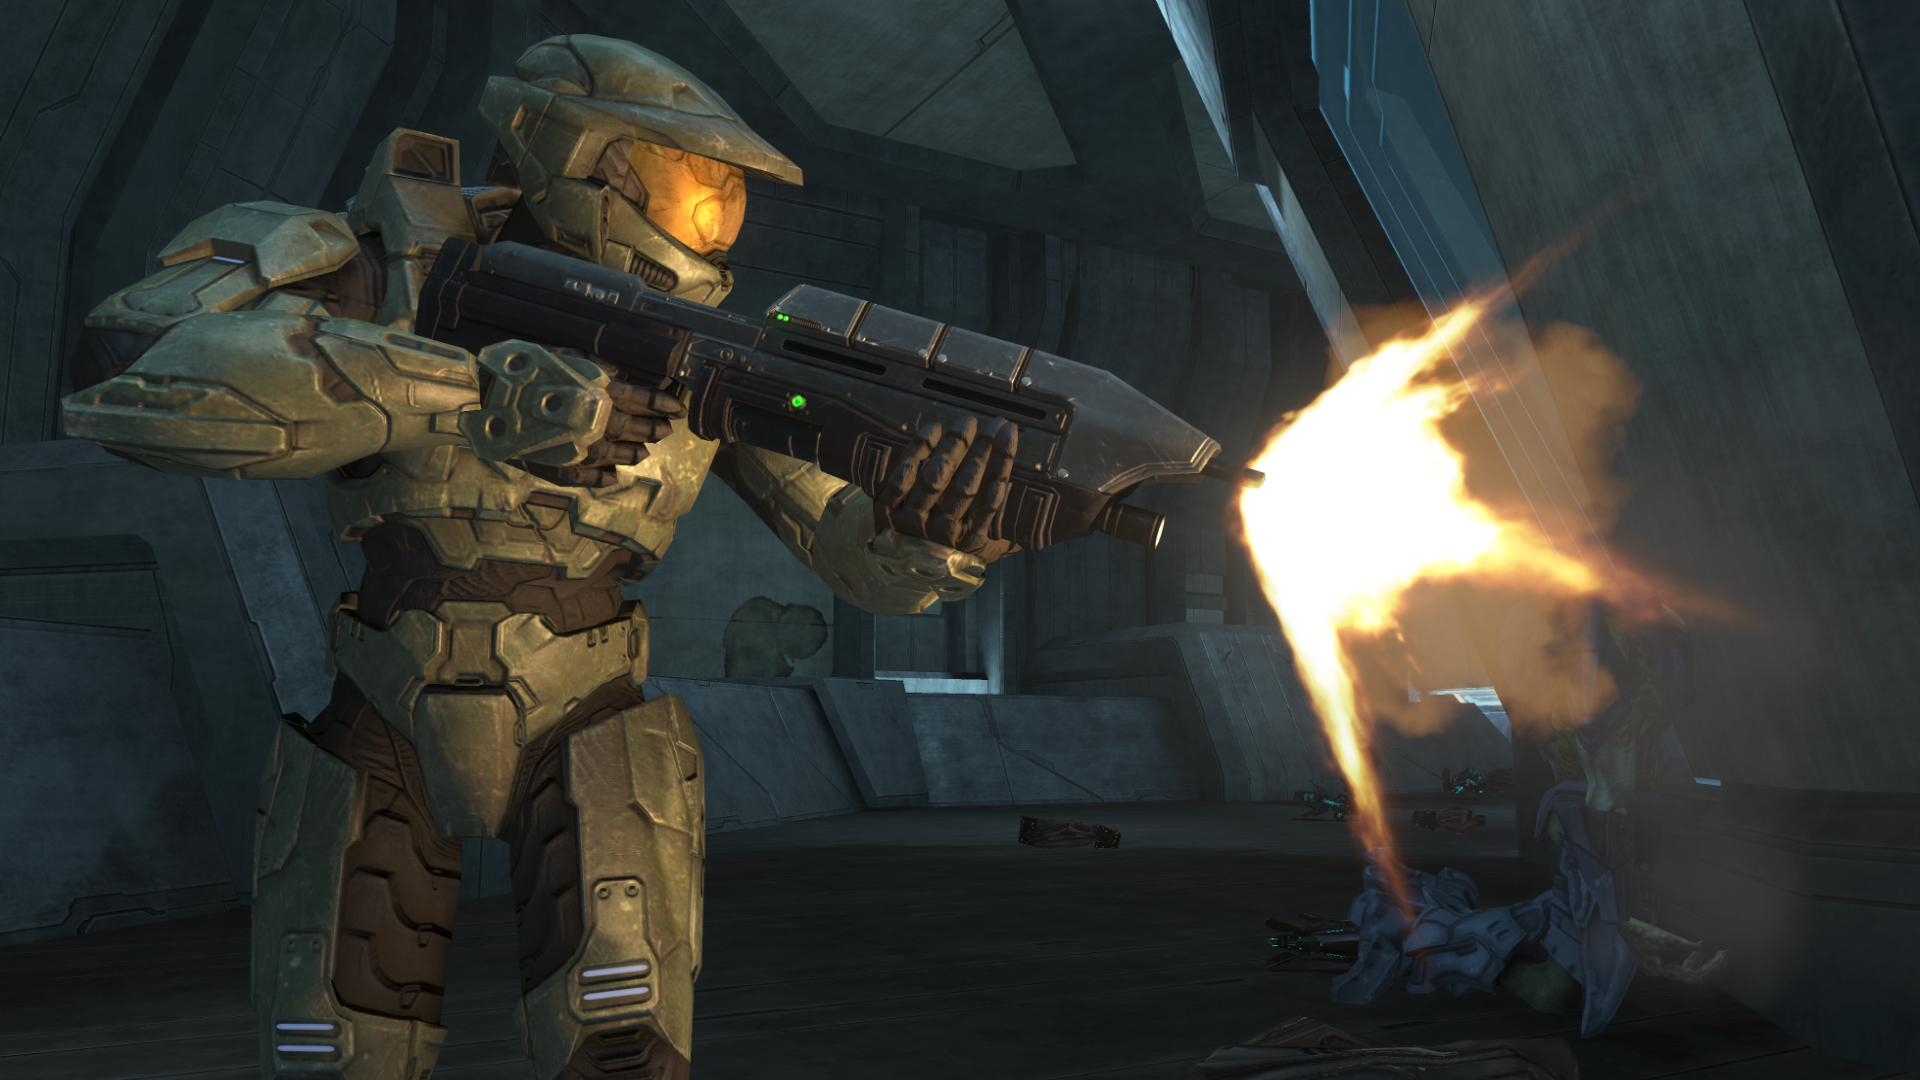 halo-3-master-chief-shoots-screenshot-big.jpg